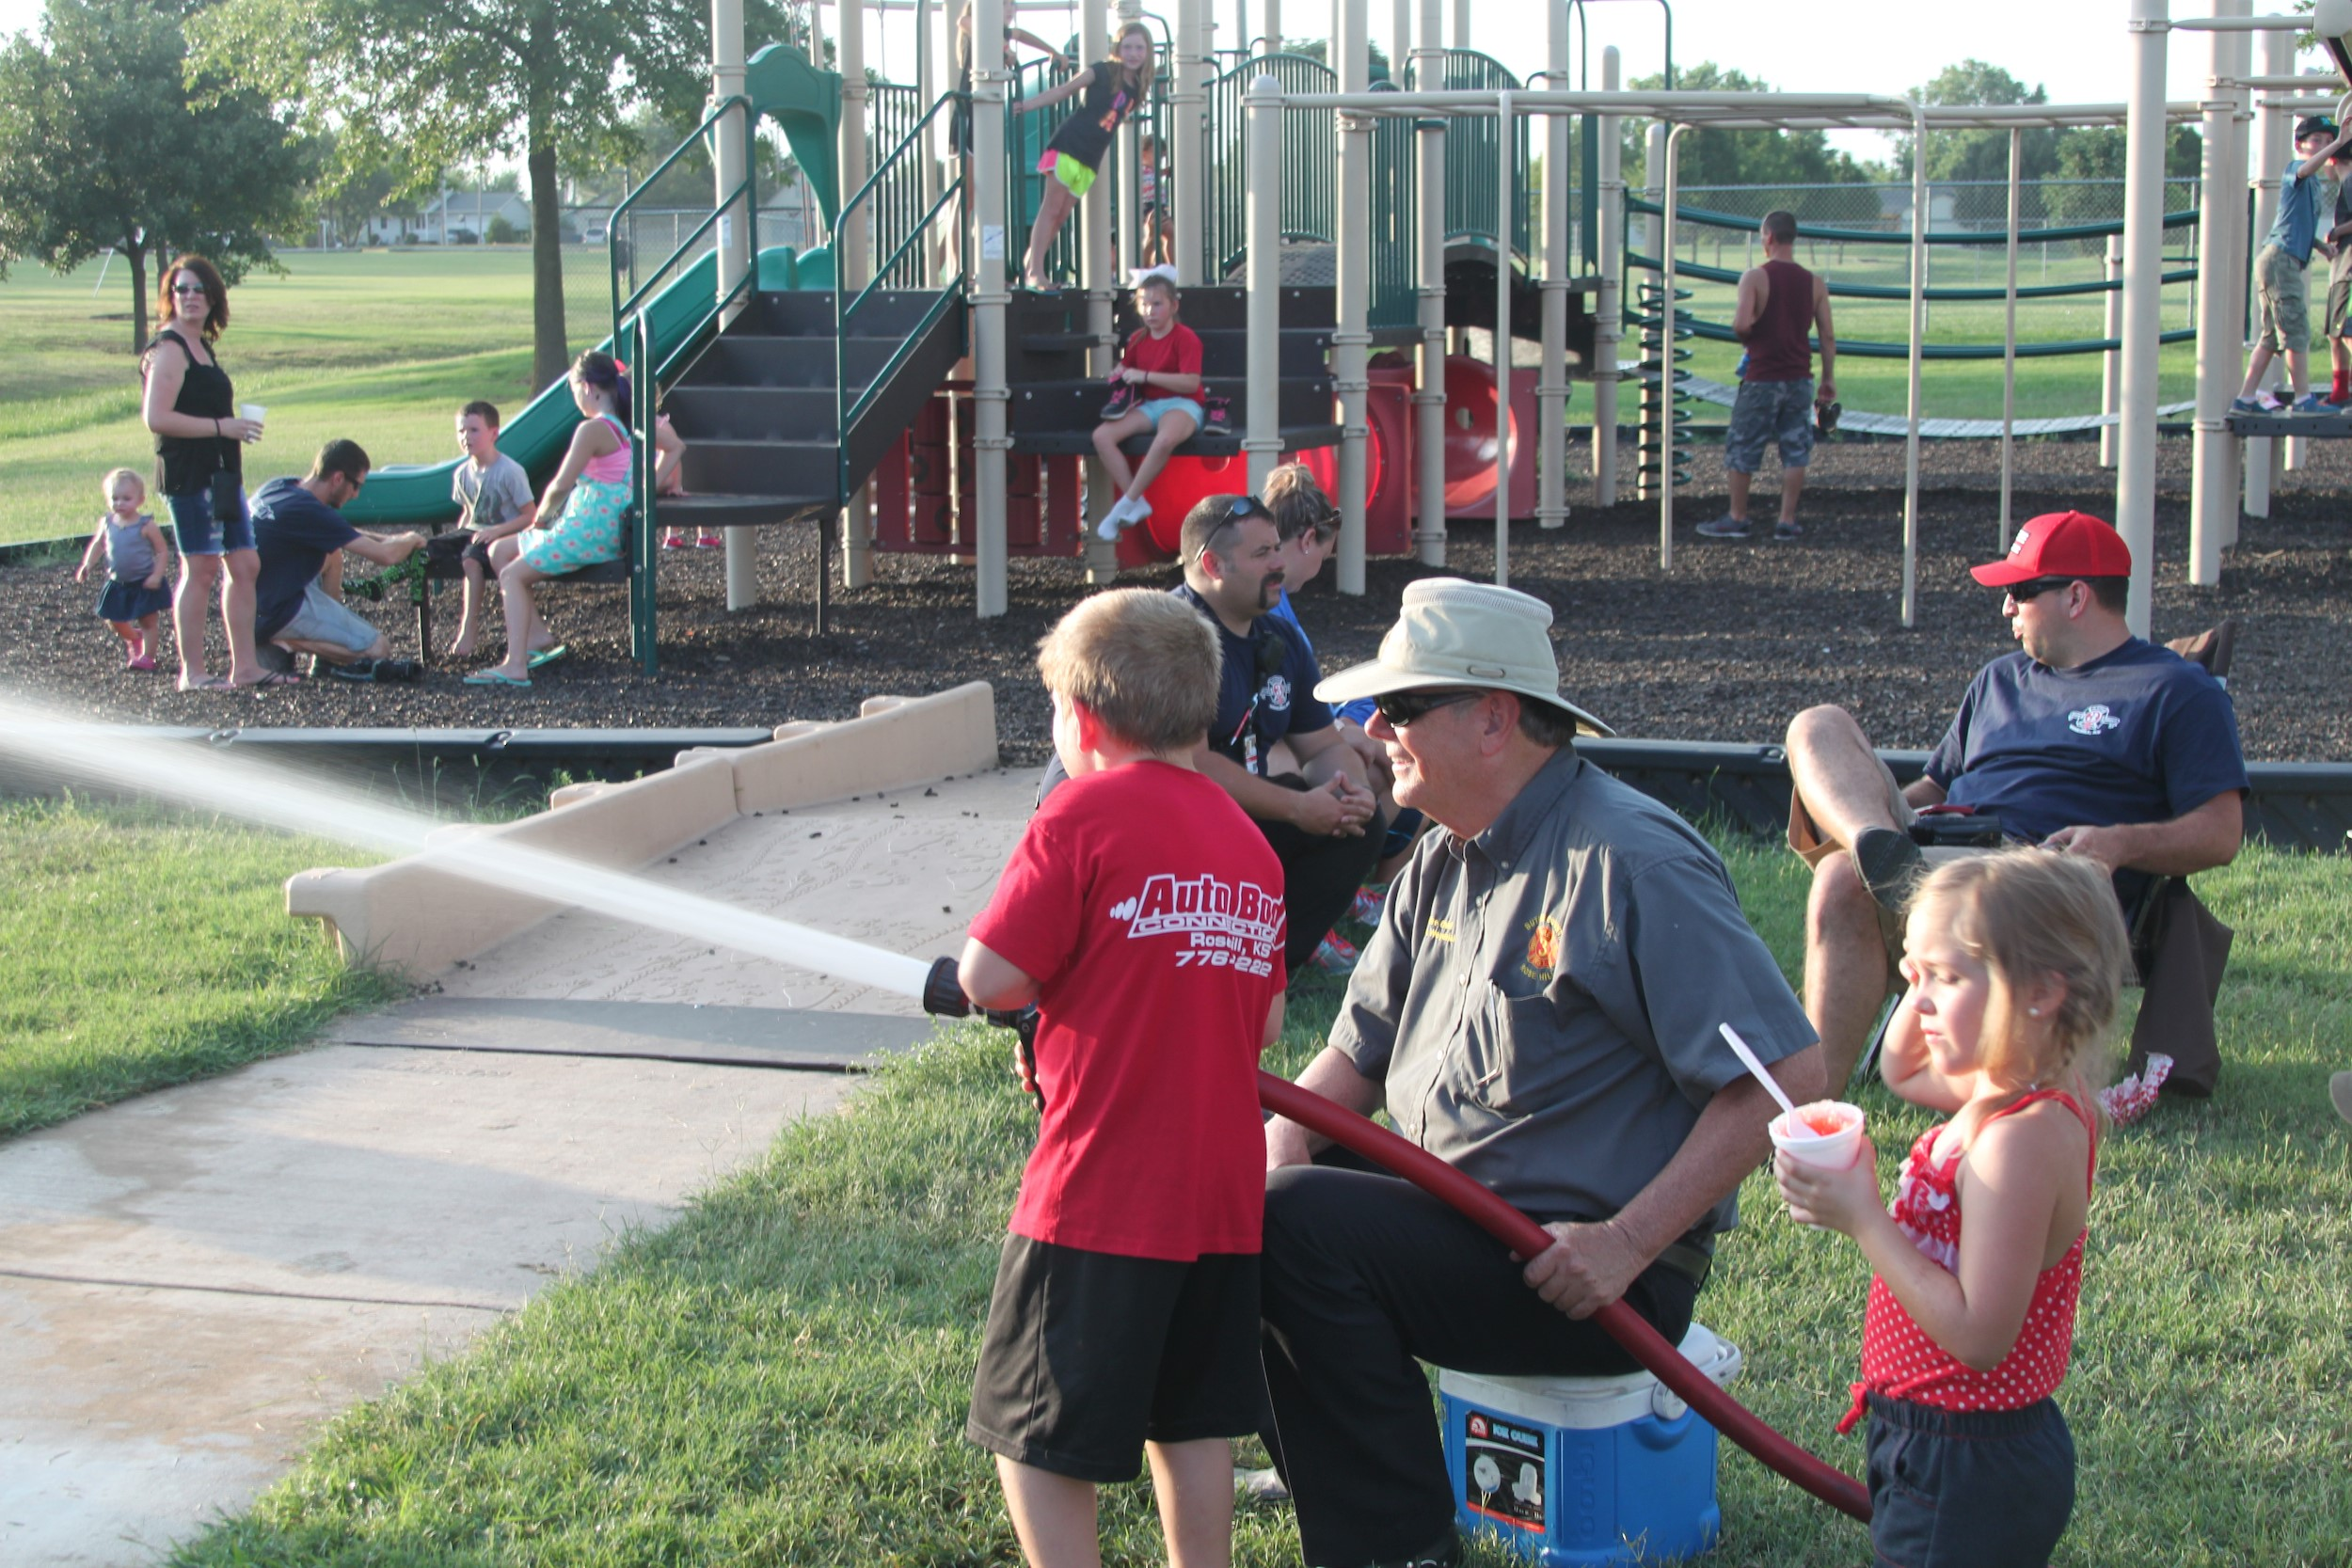 The Rose Hill community joined together for fun events with the police and fire departments.